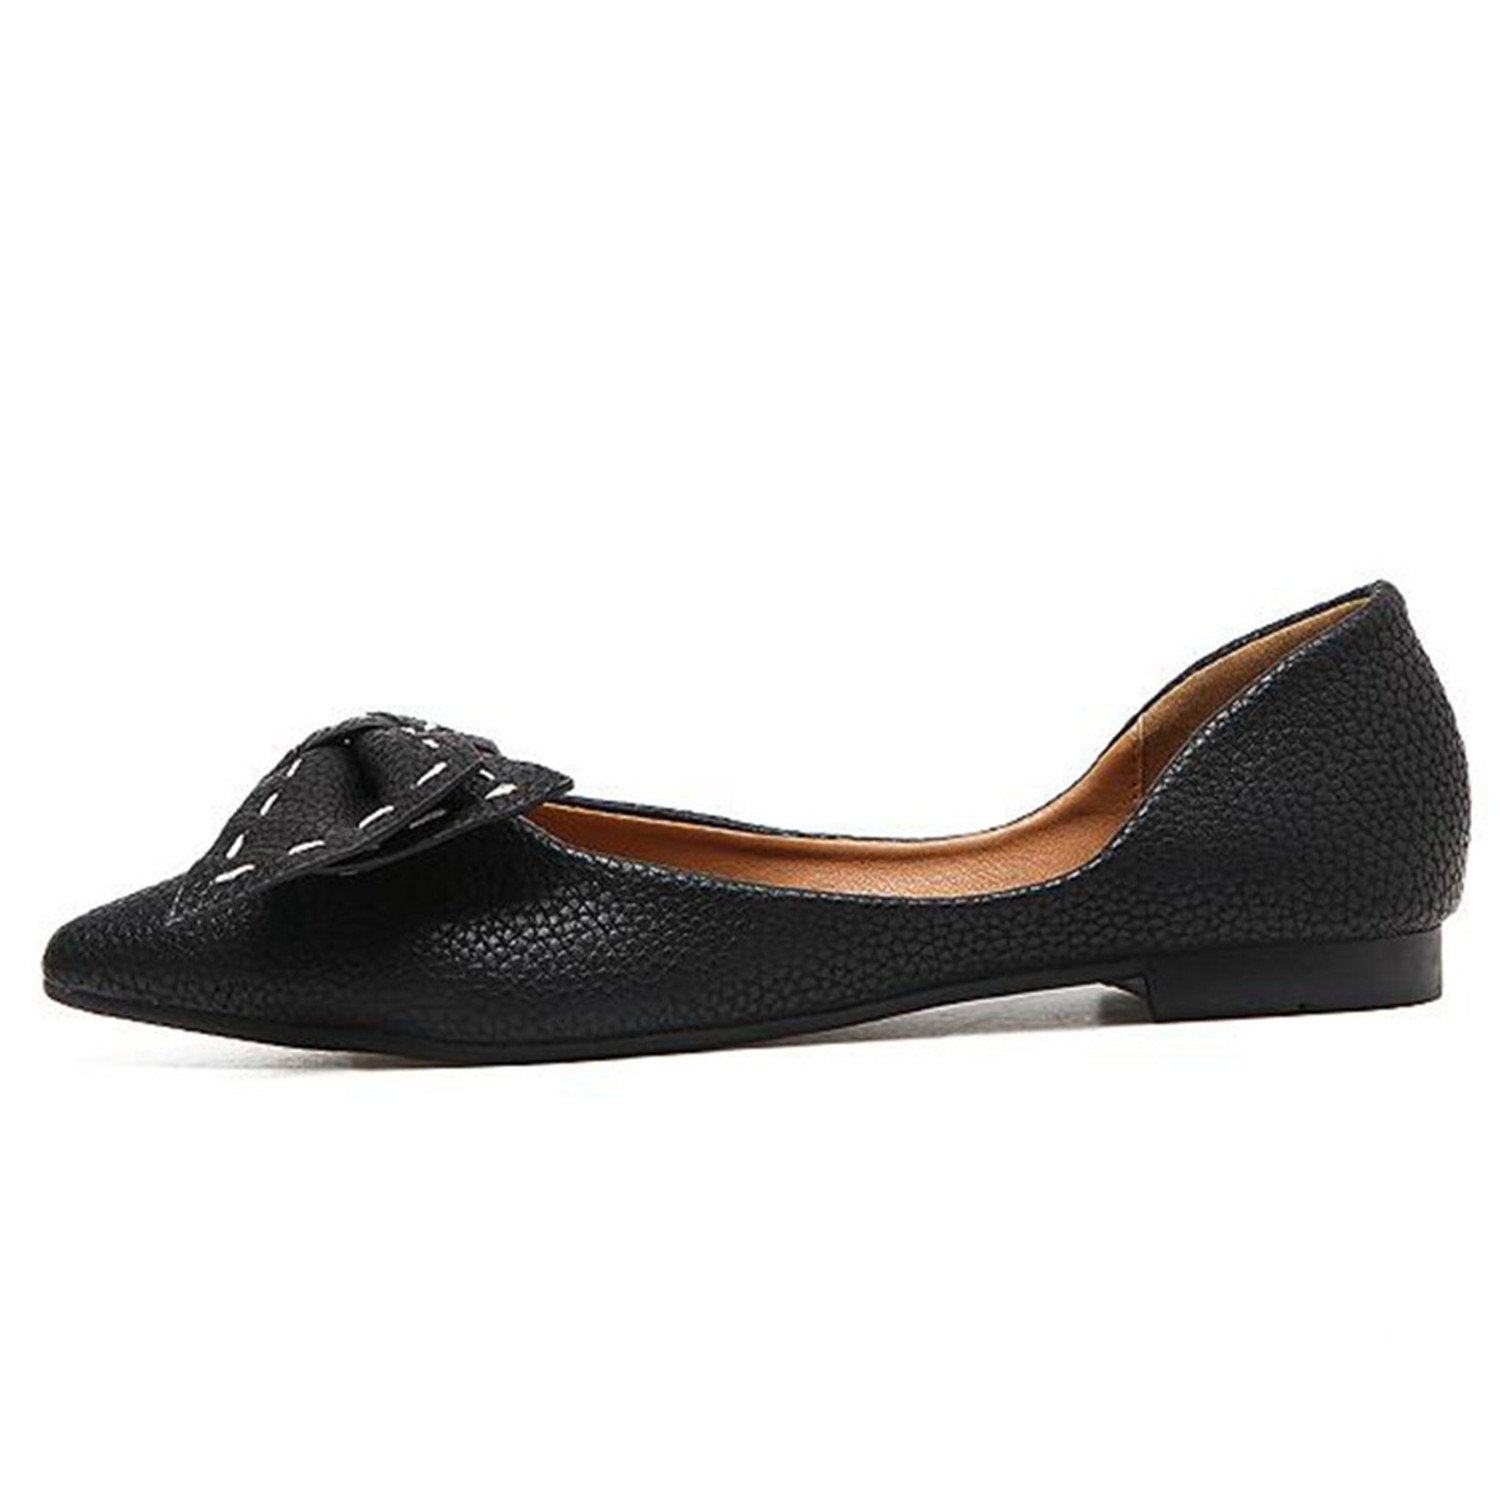 Bow Slip On Black Rubber Sole China Party Ladies Flats Shoes Women Pointed Toe